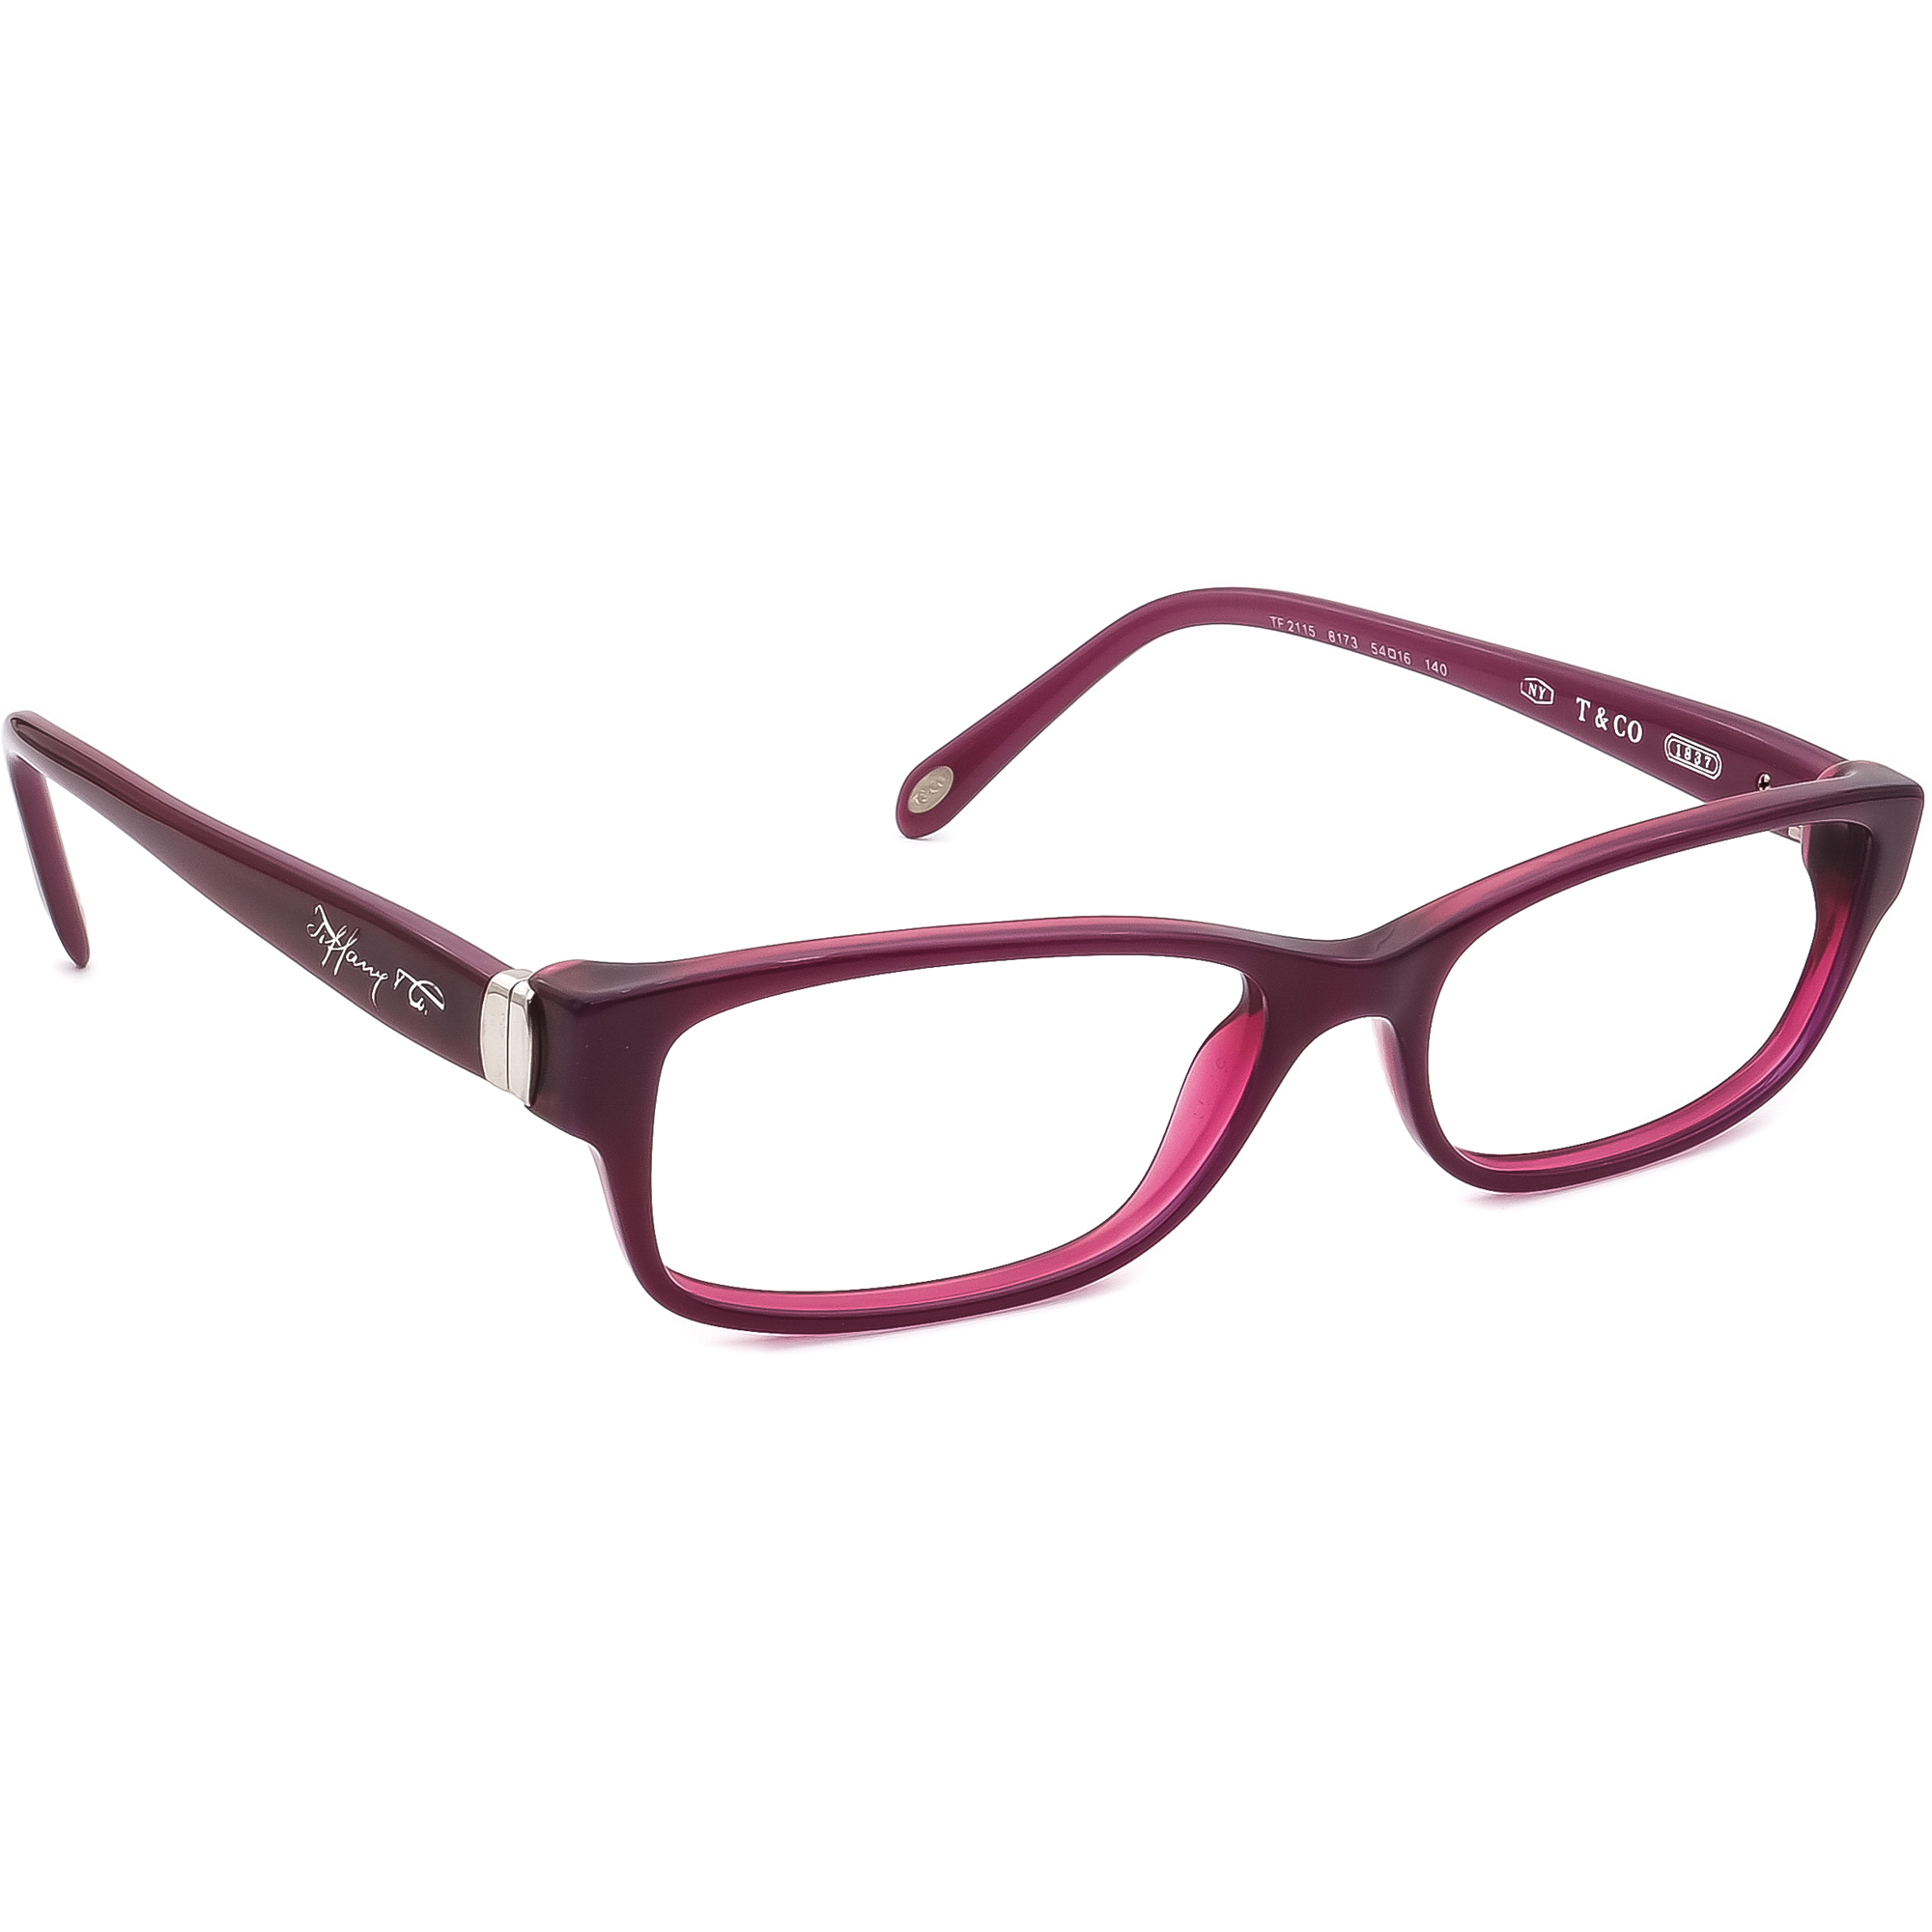 Tiffany & Co. Women's Eyeglasses TF 2115 8173 Purple Frame Italy 54[]16 140